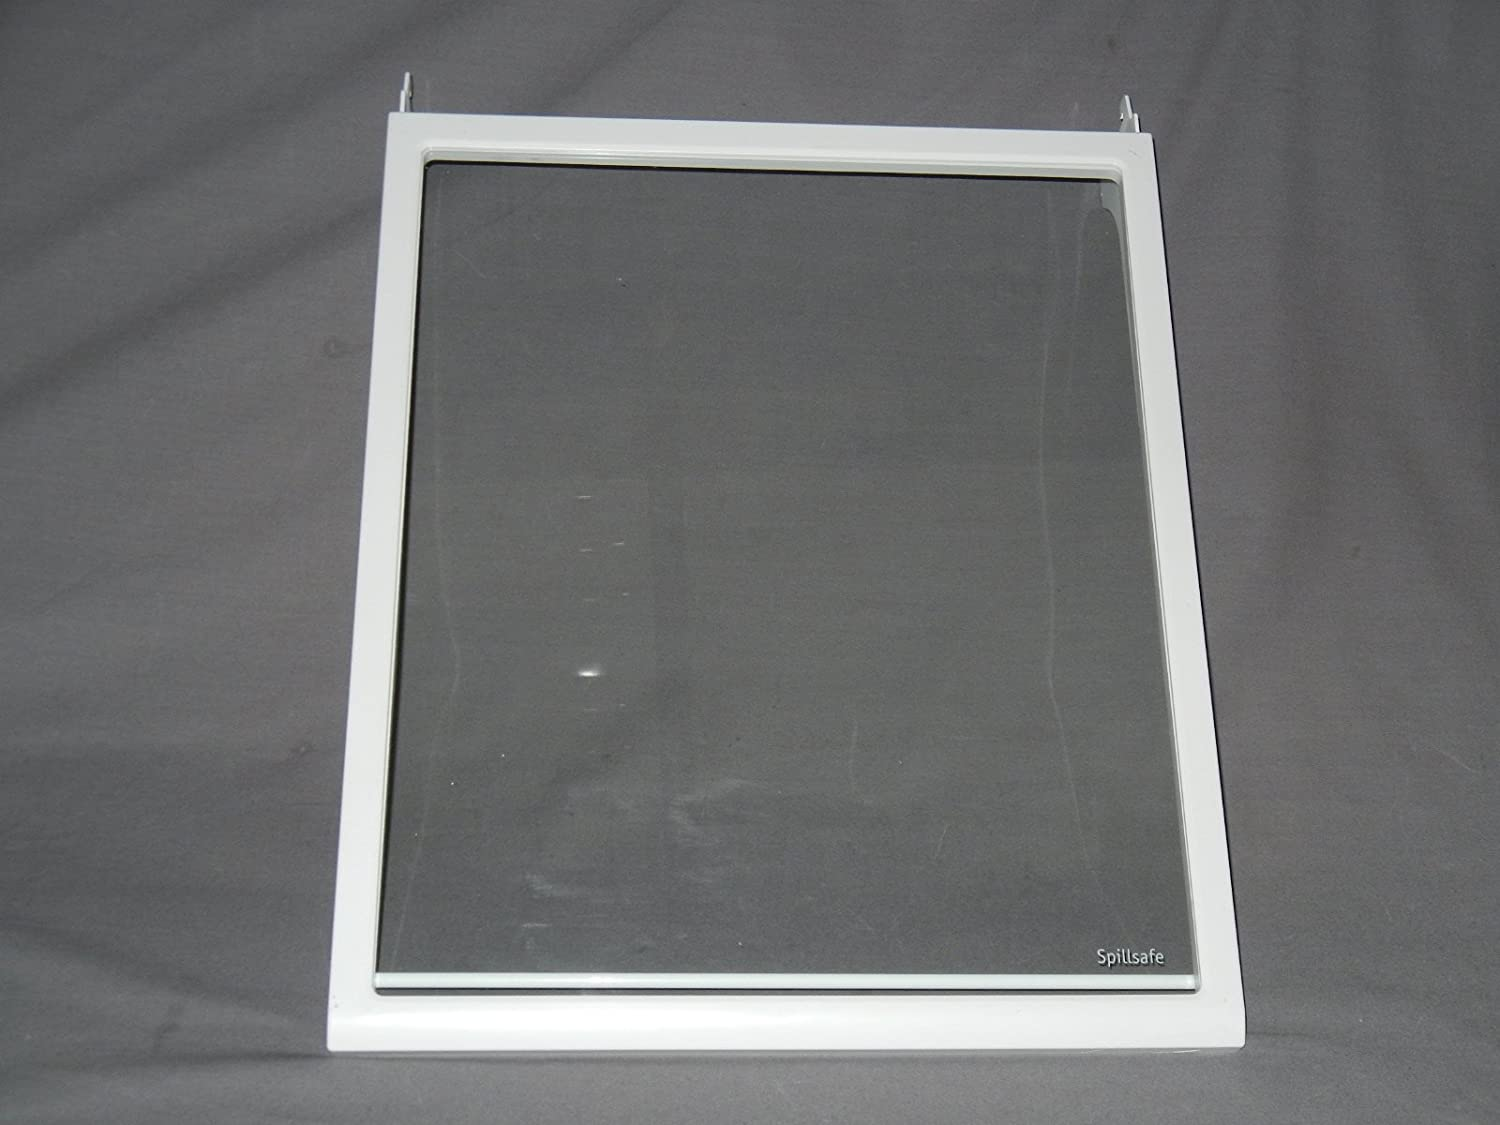 242068703 Refrigerator Shelf Genuine Original Equipment Manufacturer (OEM) Part